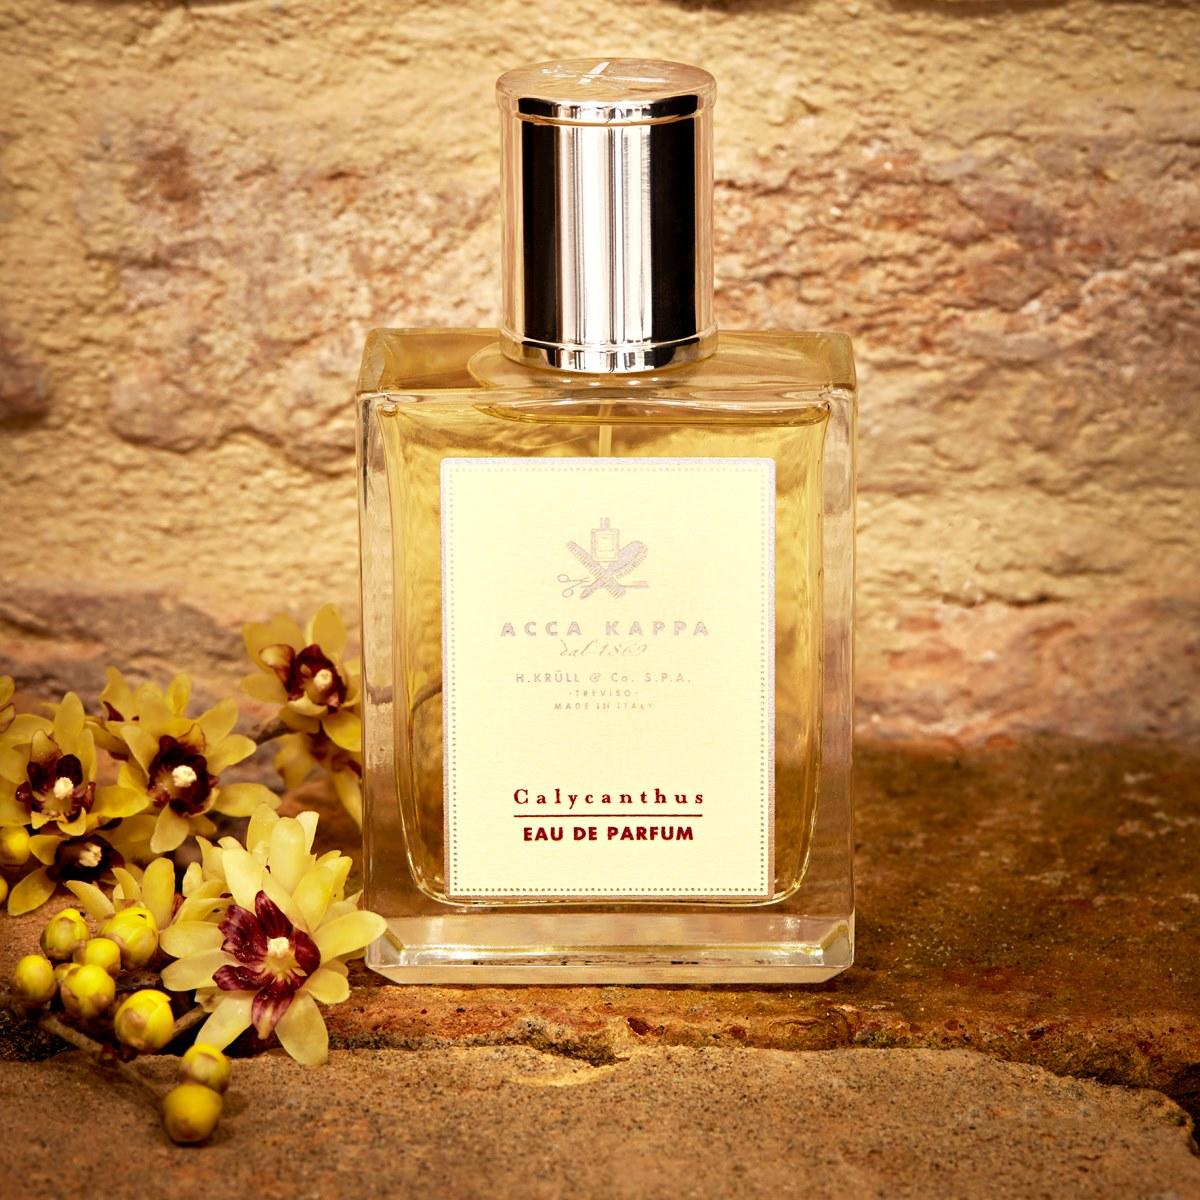 Pictured: The Calycanthus Eau de Parfum by ACCA KAPPA